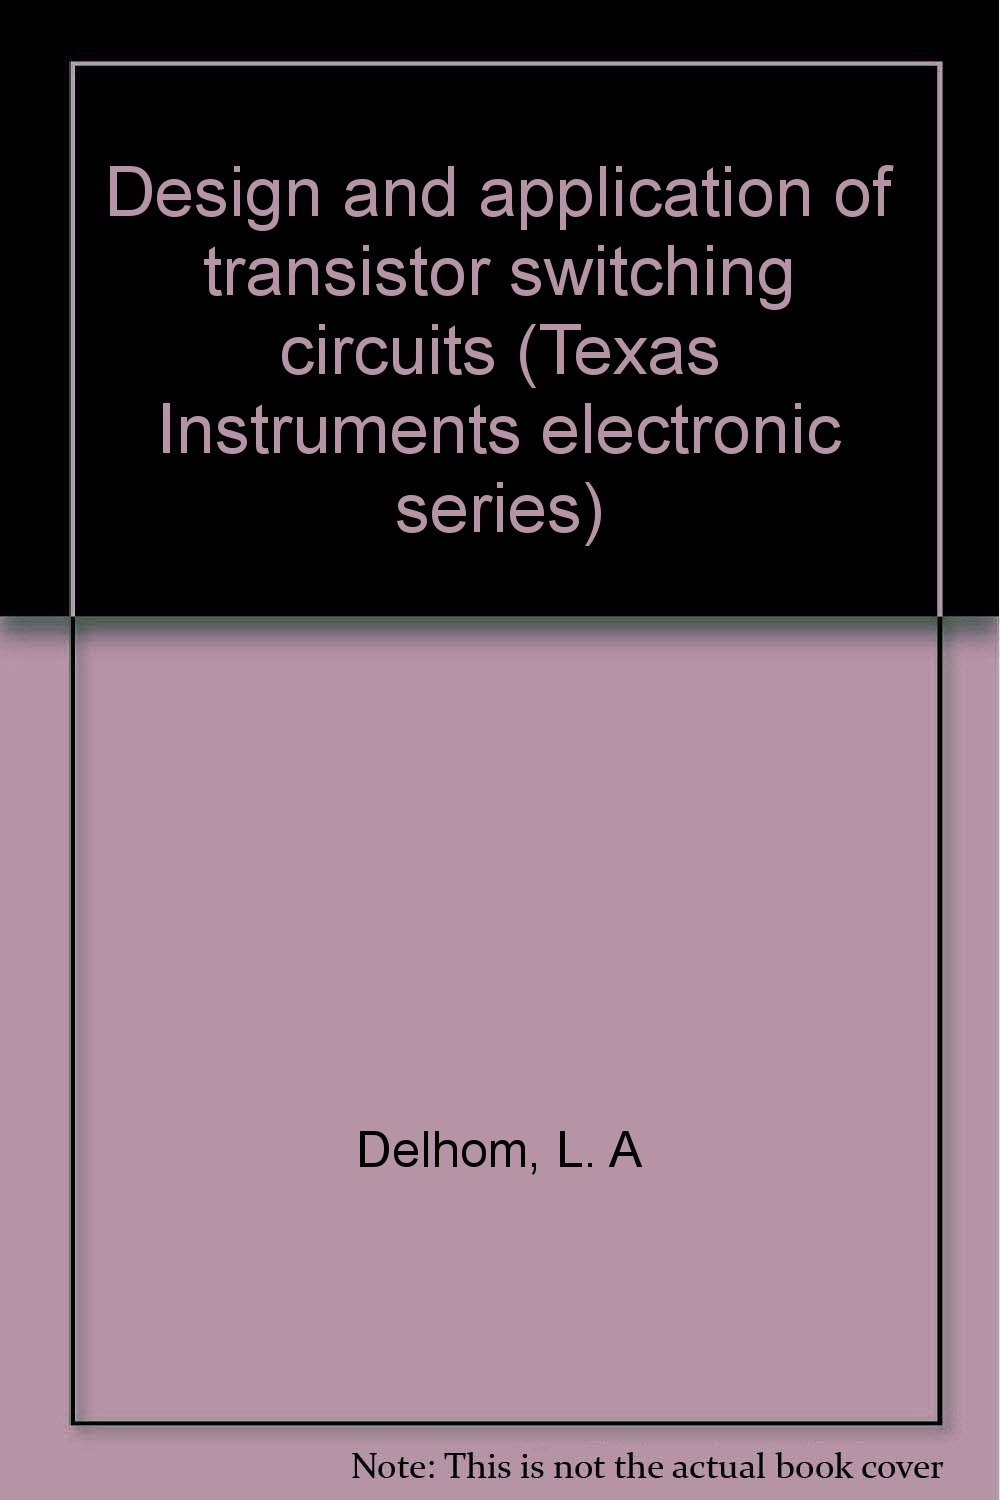 Design And Application Of Transistor Switching Circuits L A Delhom As Switch Books